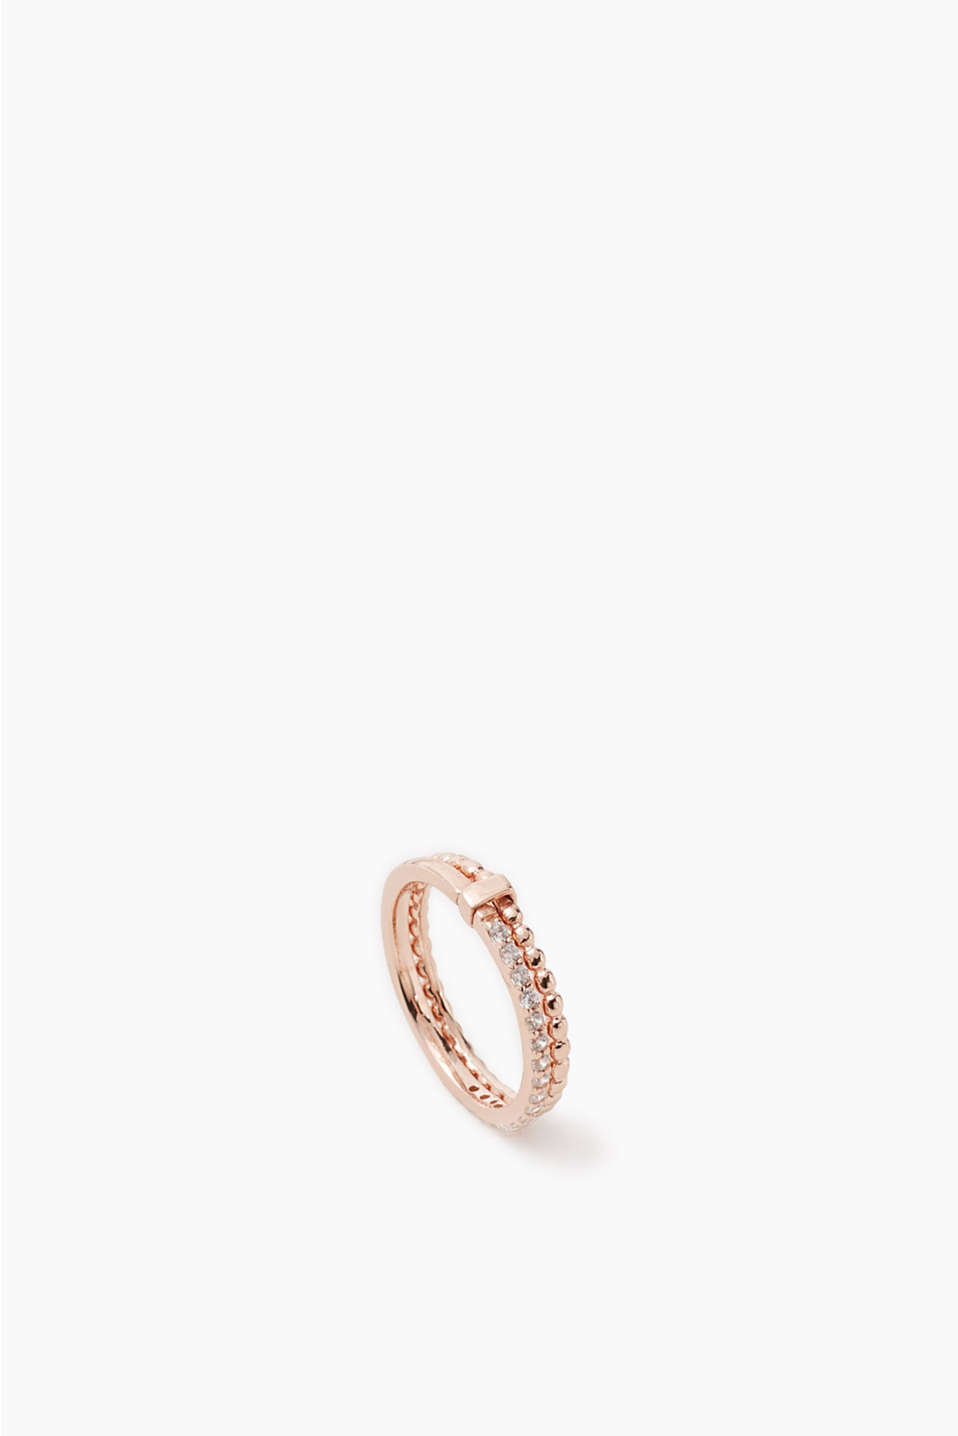 Gold-plated, sterling silver ring made of two bands with different designs and zirconia trim, width approx. 4 mm